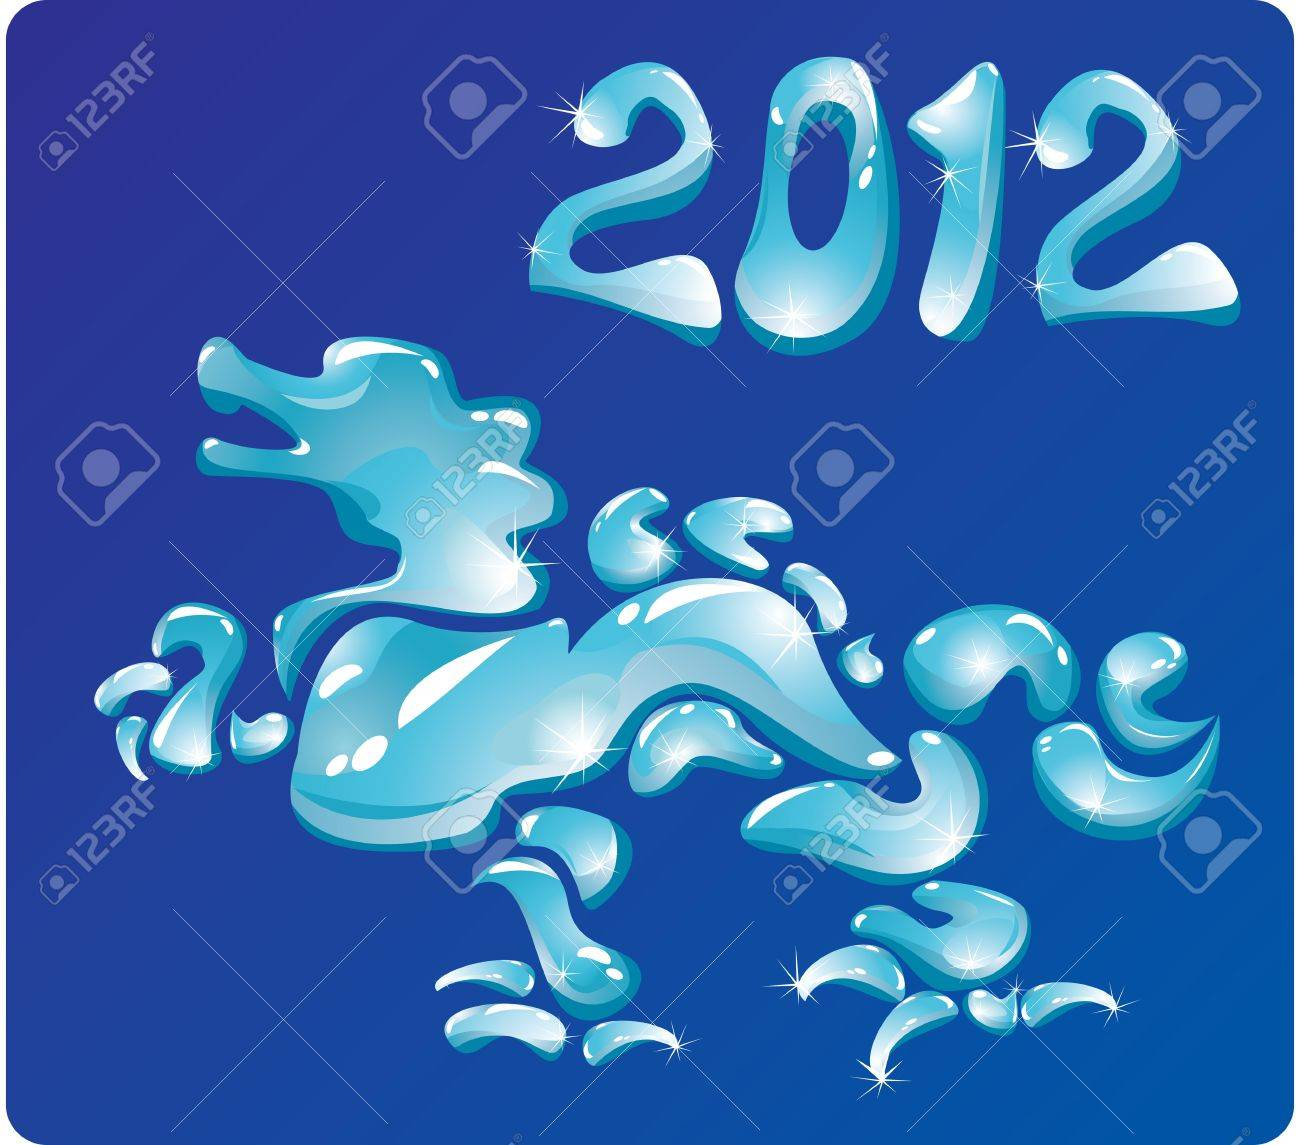 Symbol 2012 Dragon is made of water drops. Stock Vector - 11142368